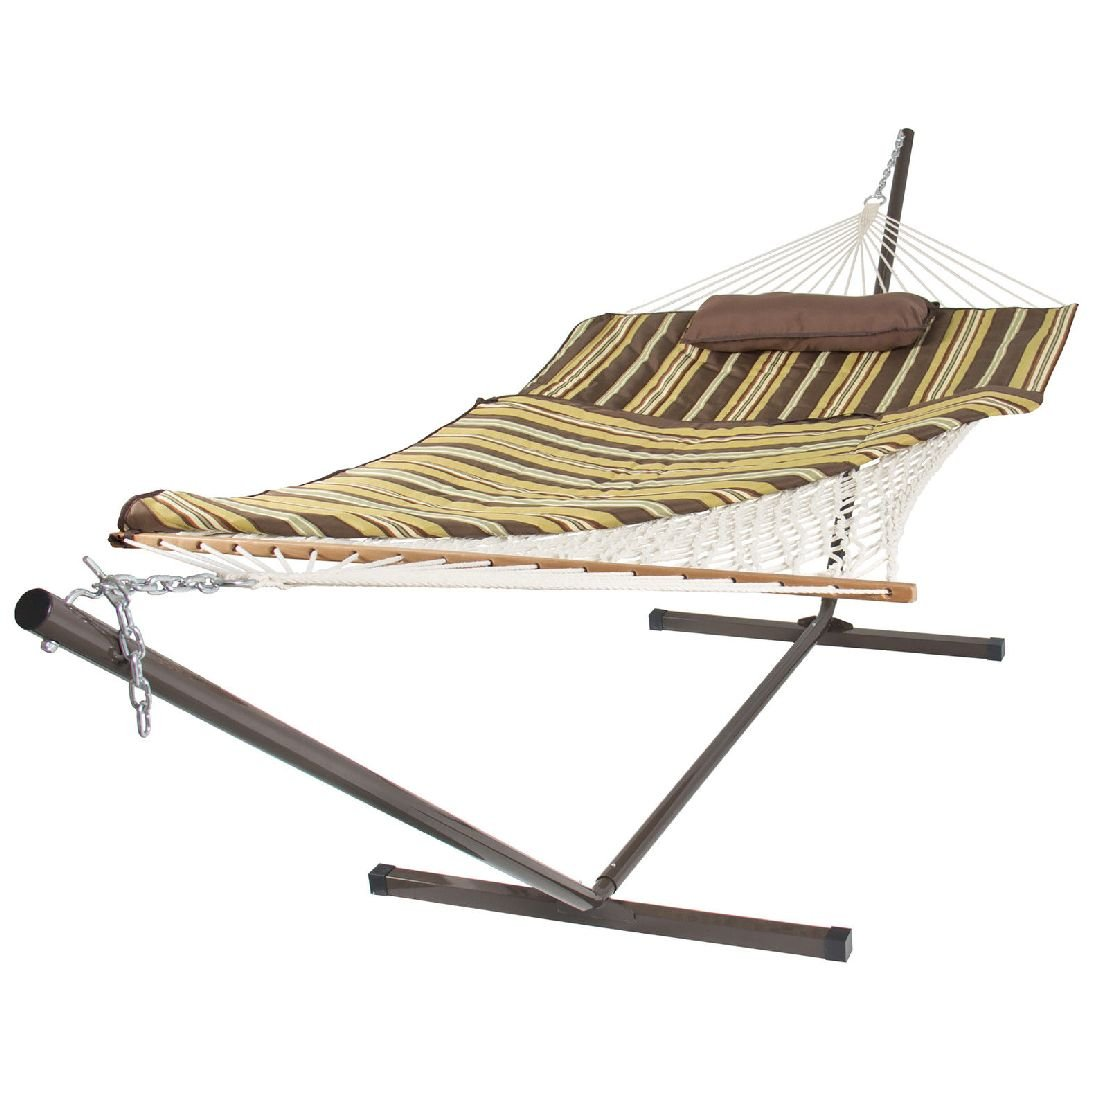 Cotton Rope Hammock & 12 Feet Steel Stand Combo w/ Stripe Pad and Pillow by BEC